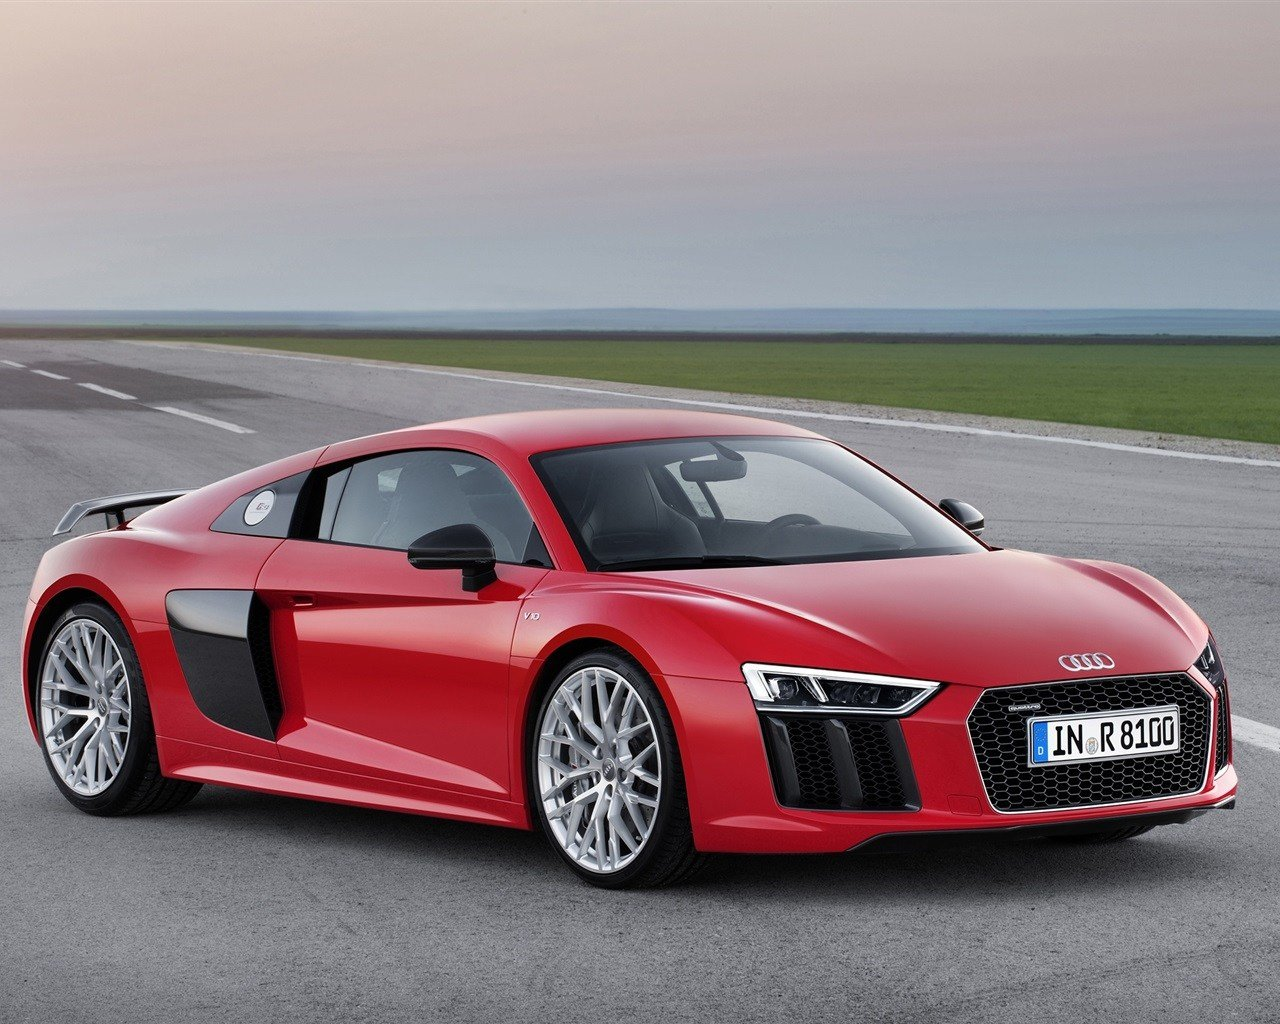 Latest 2015 Audi R8 Red Car Wallpaper 1280X1024 Resolution Free Download